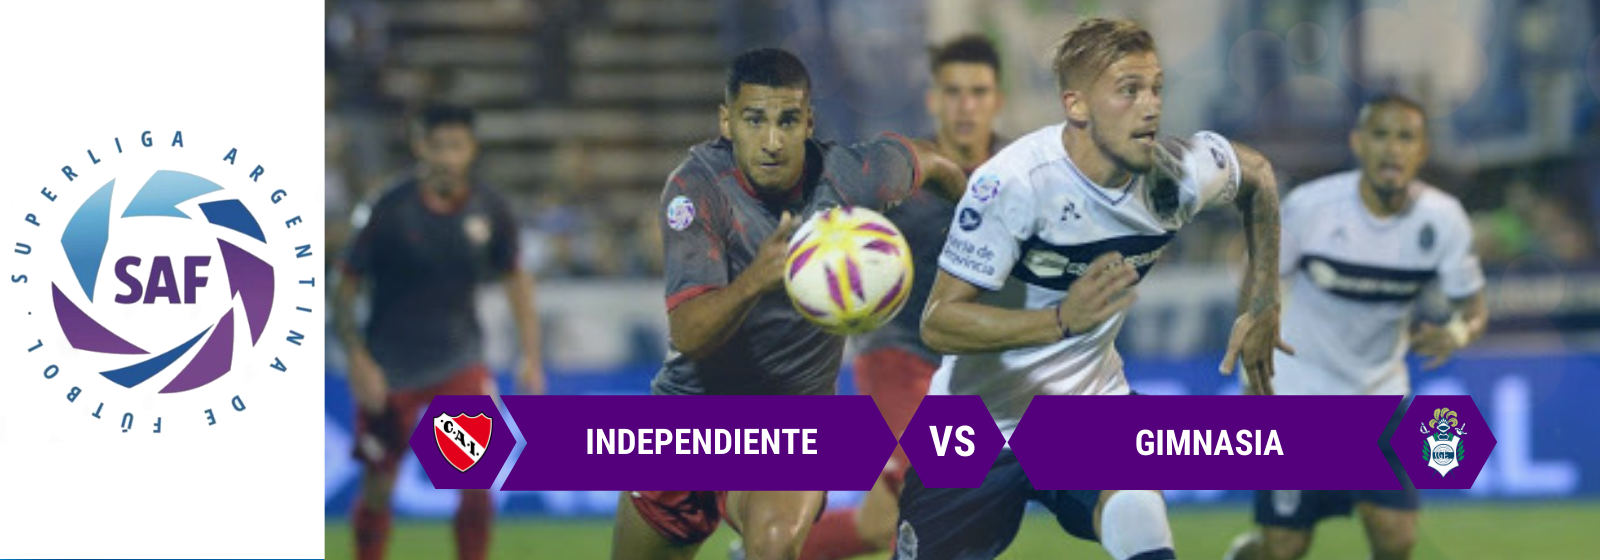 Asianconnect: Independiente vs Gimnasia Odds for February 22, 2020